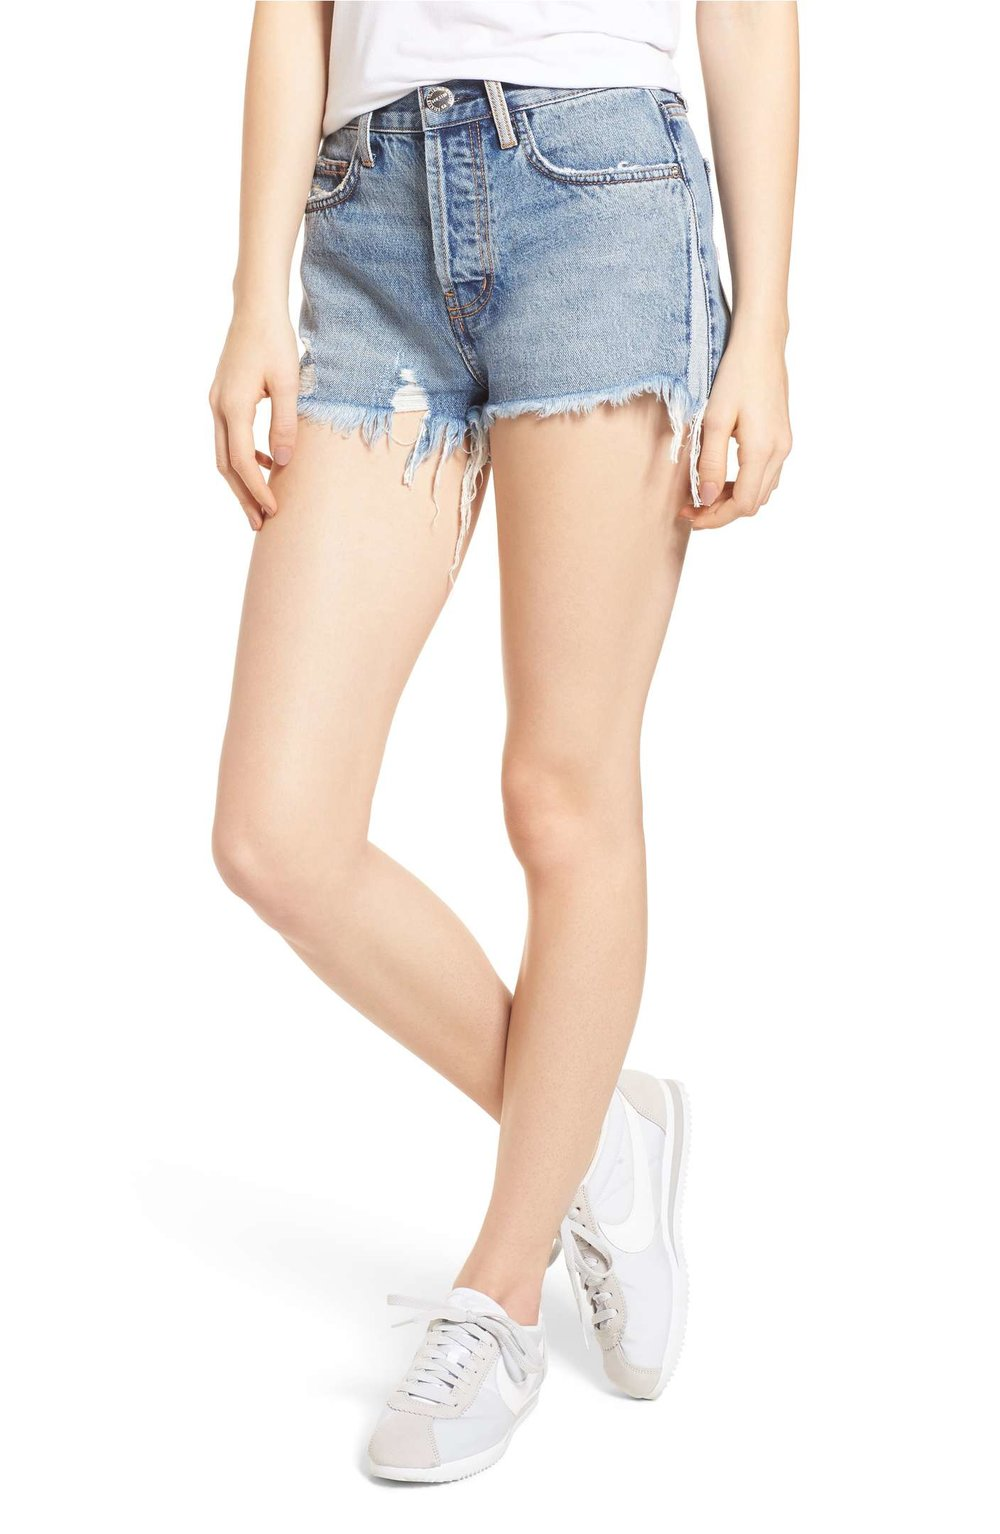 The Ultra High Waist Cutoff Denim Shorts